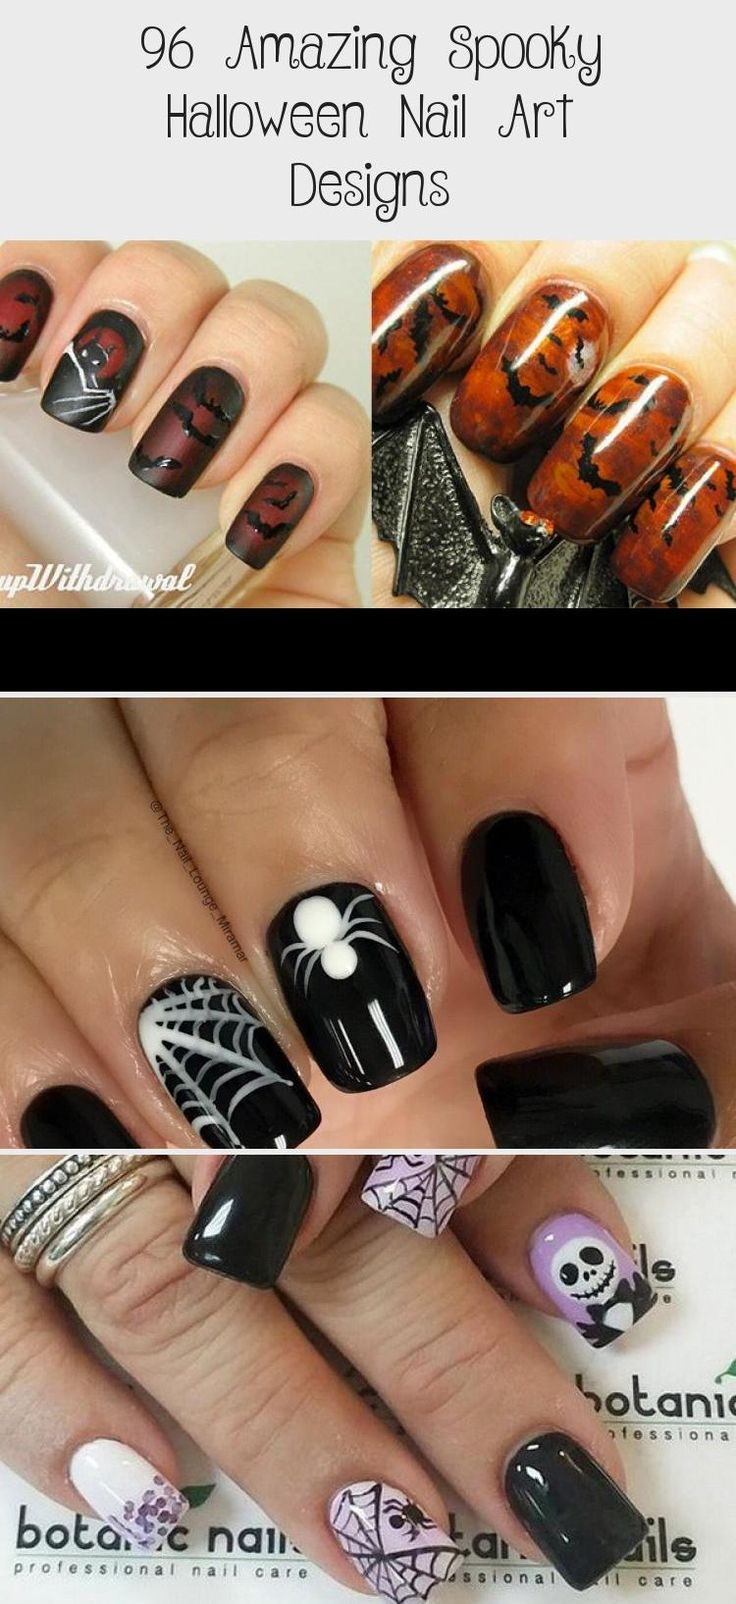 Hair Styles - in 2020 | Halloween nails diy, Teal nail ...